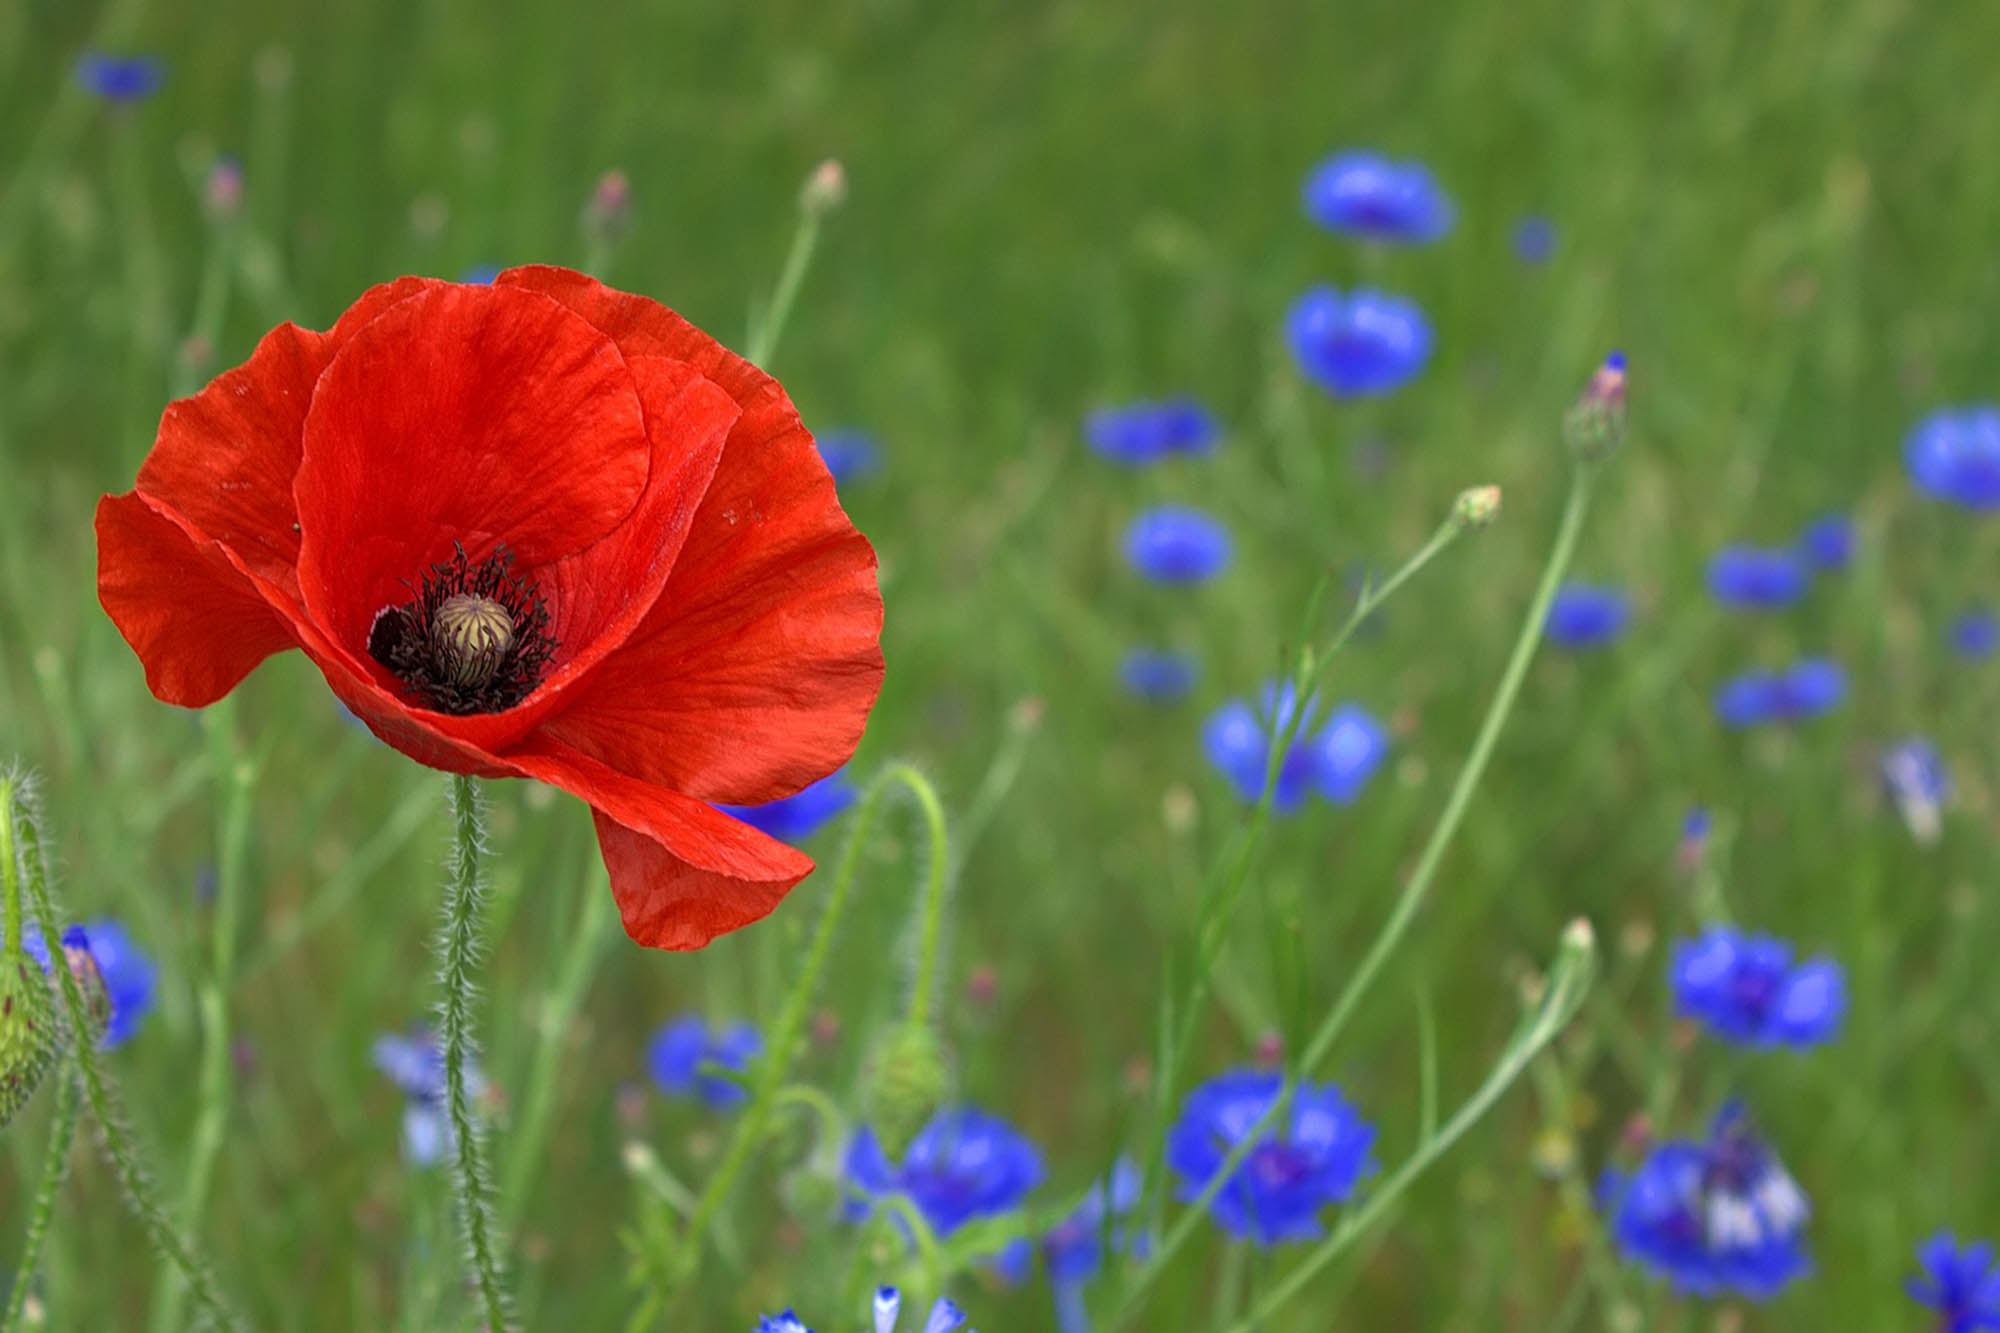 poppy_flower_nature.jpg